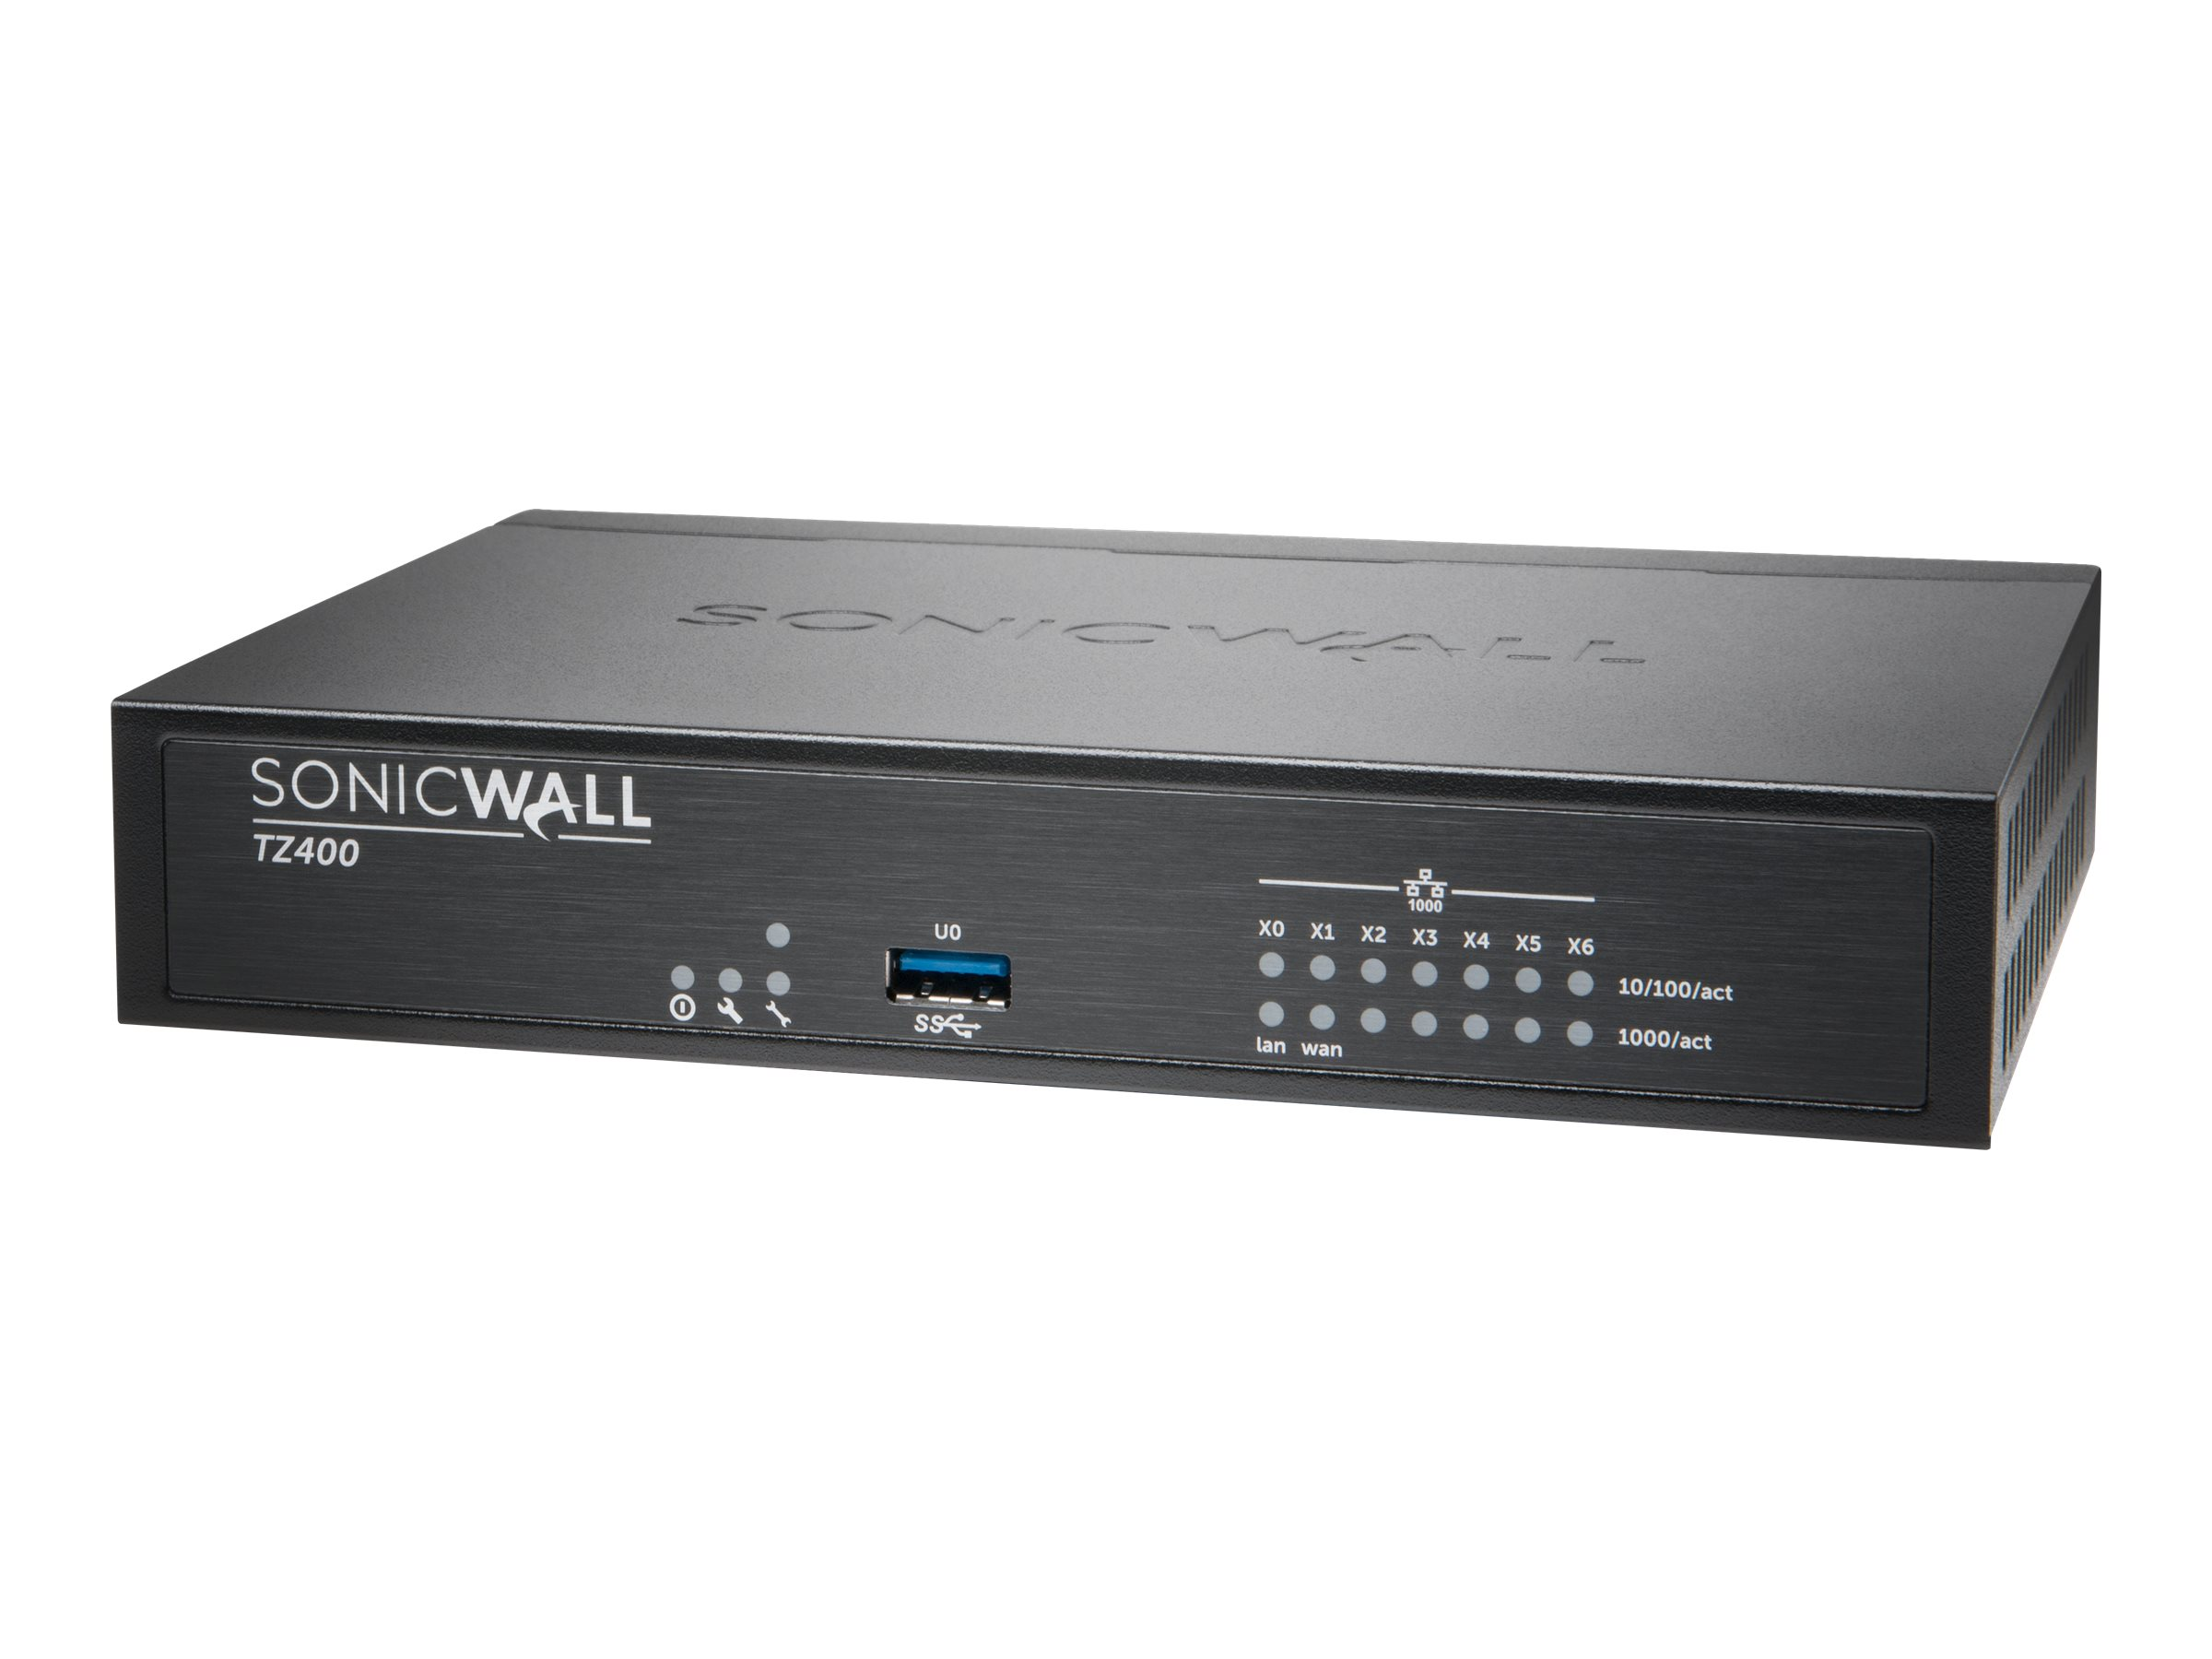 SonicWall TZ400 - security appliance